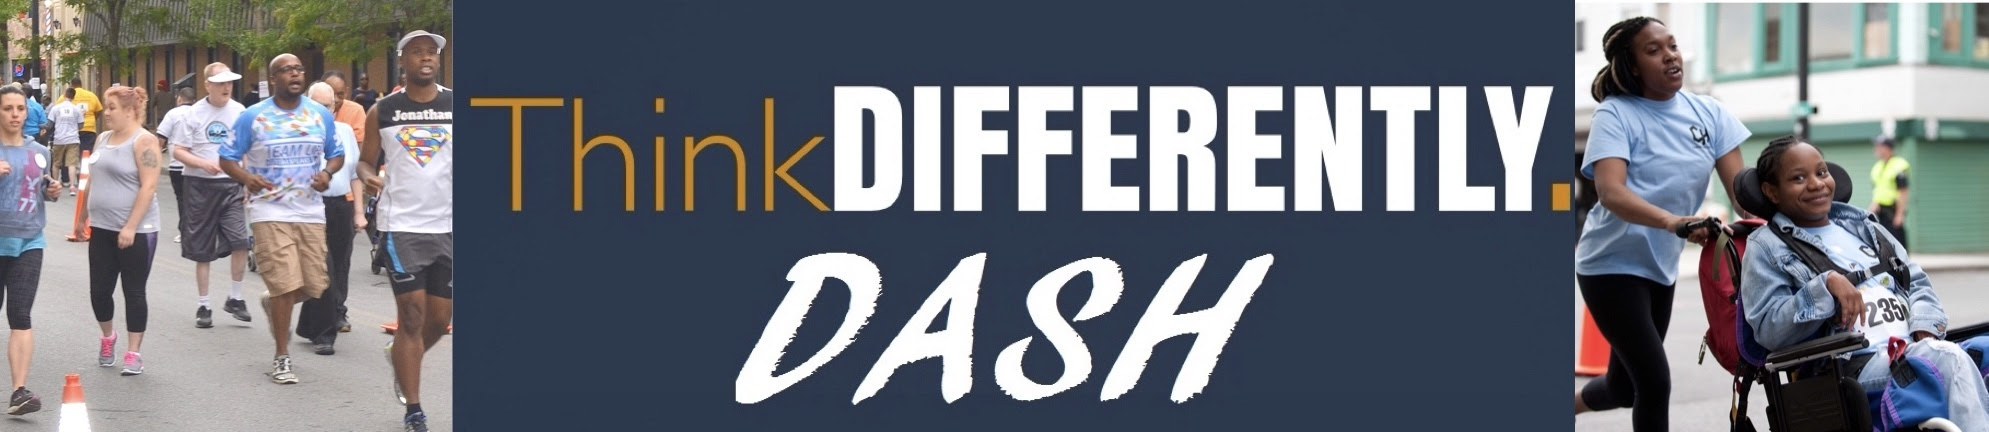 ThinkDIFFERENTLYDash